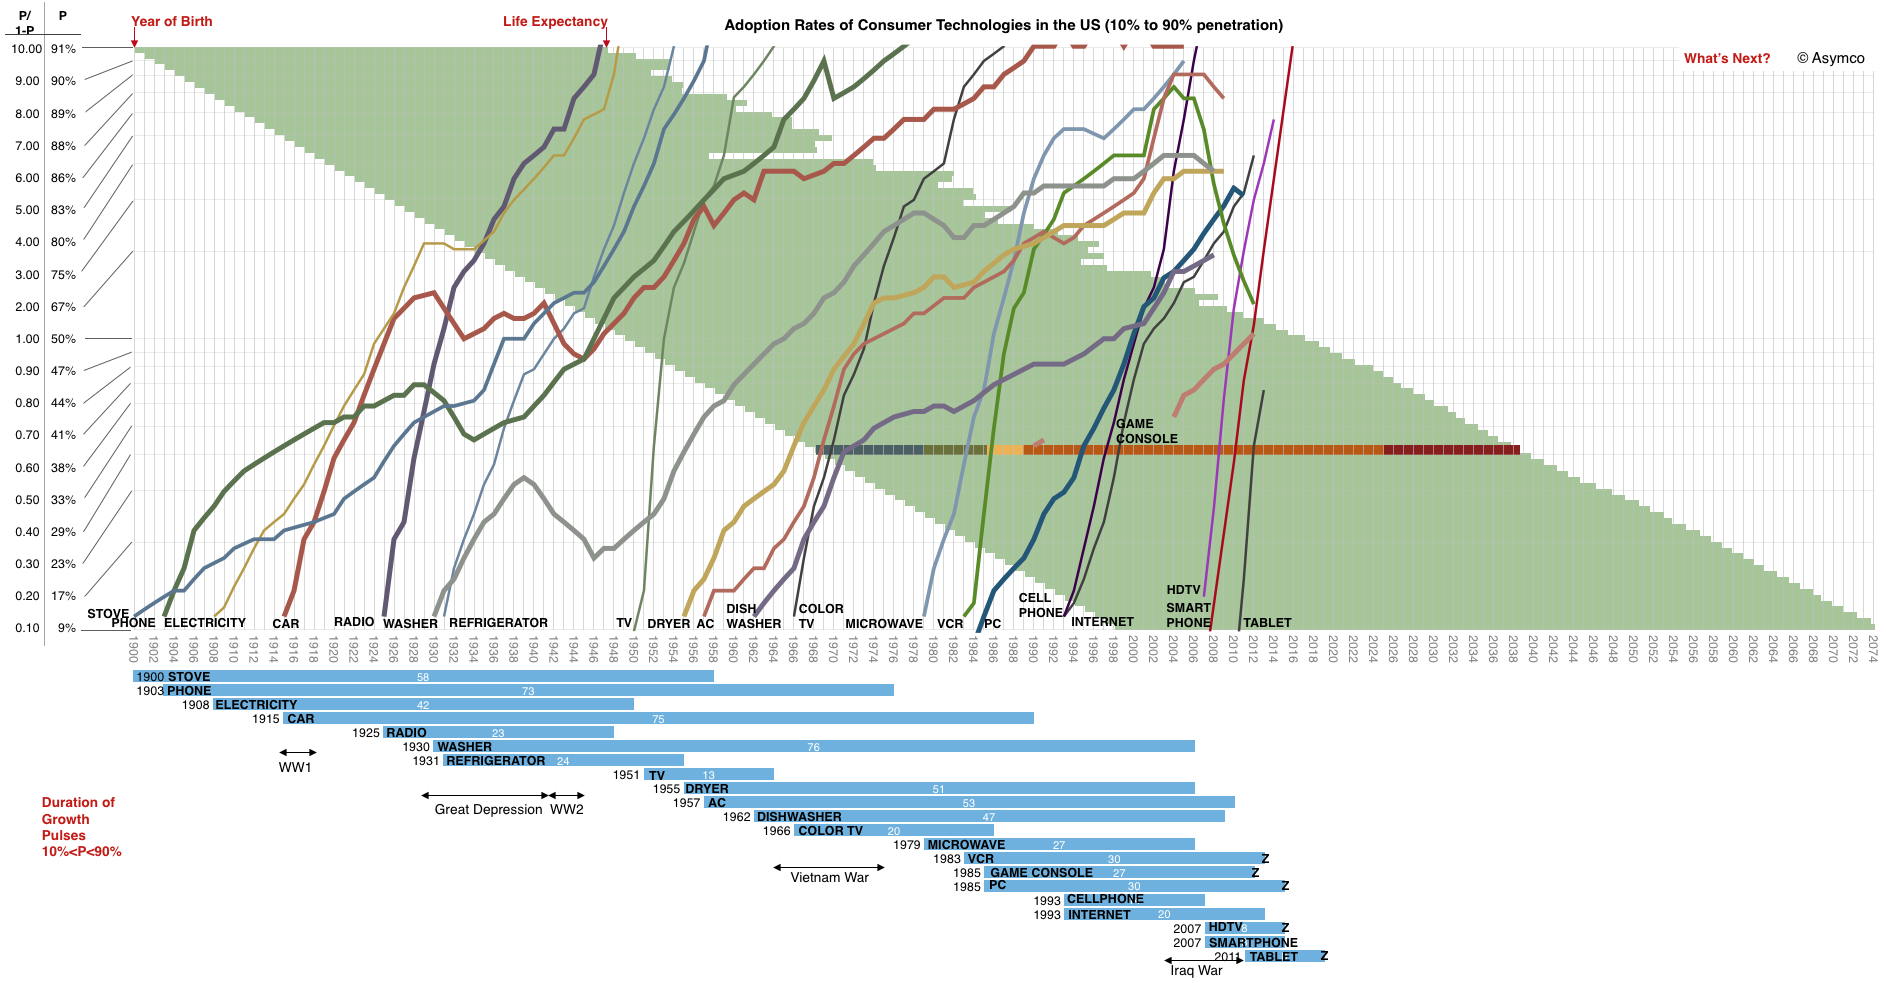 Figure 4.  Illustrates technological adoption rates of various technologies since 1900.[70]